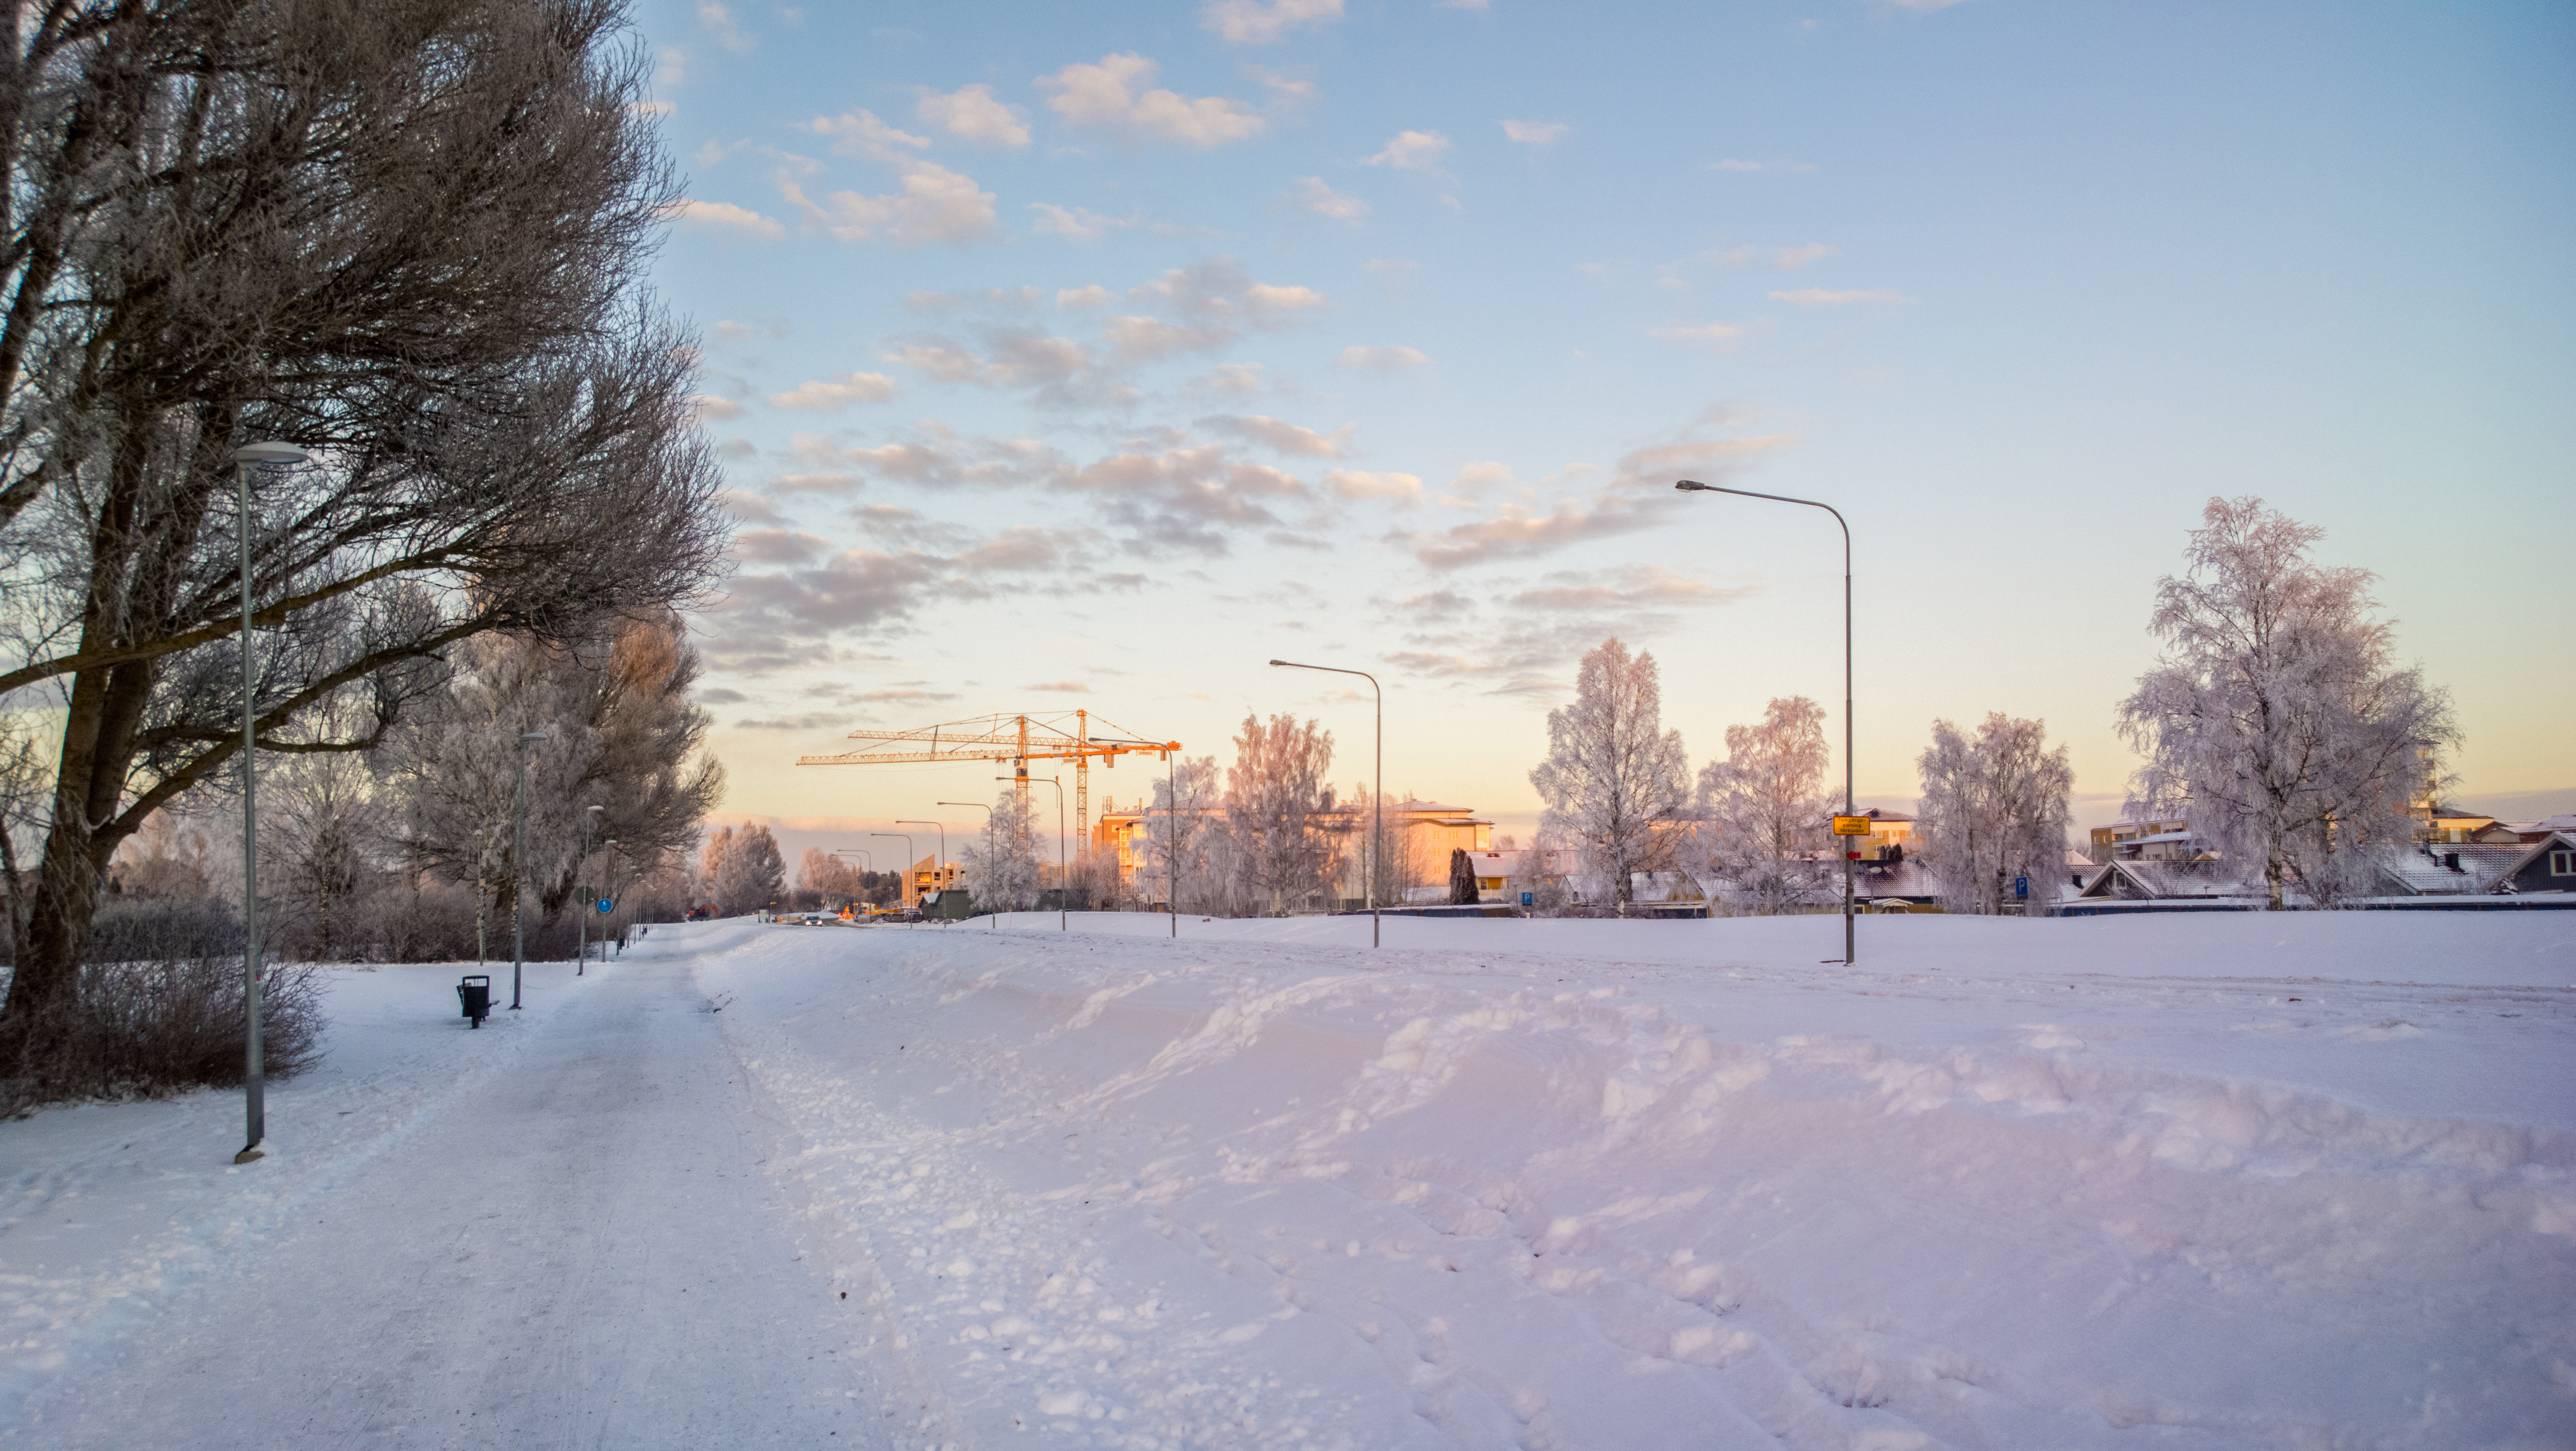 snowy path landscape under the sky in winter image - free stock photo